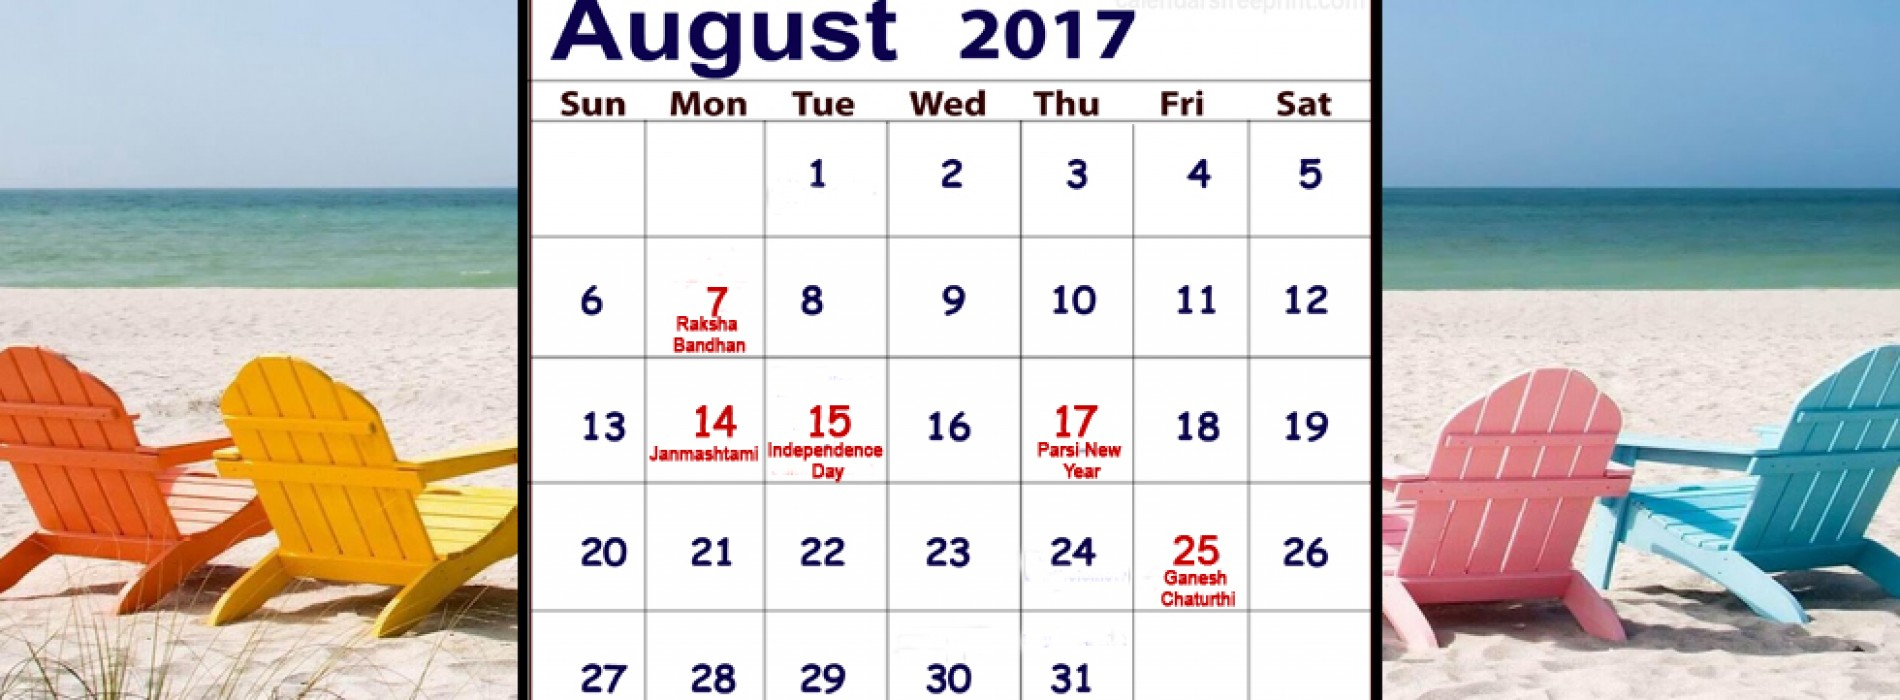 In August, enjoy one long weekend after another